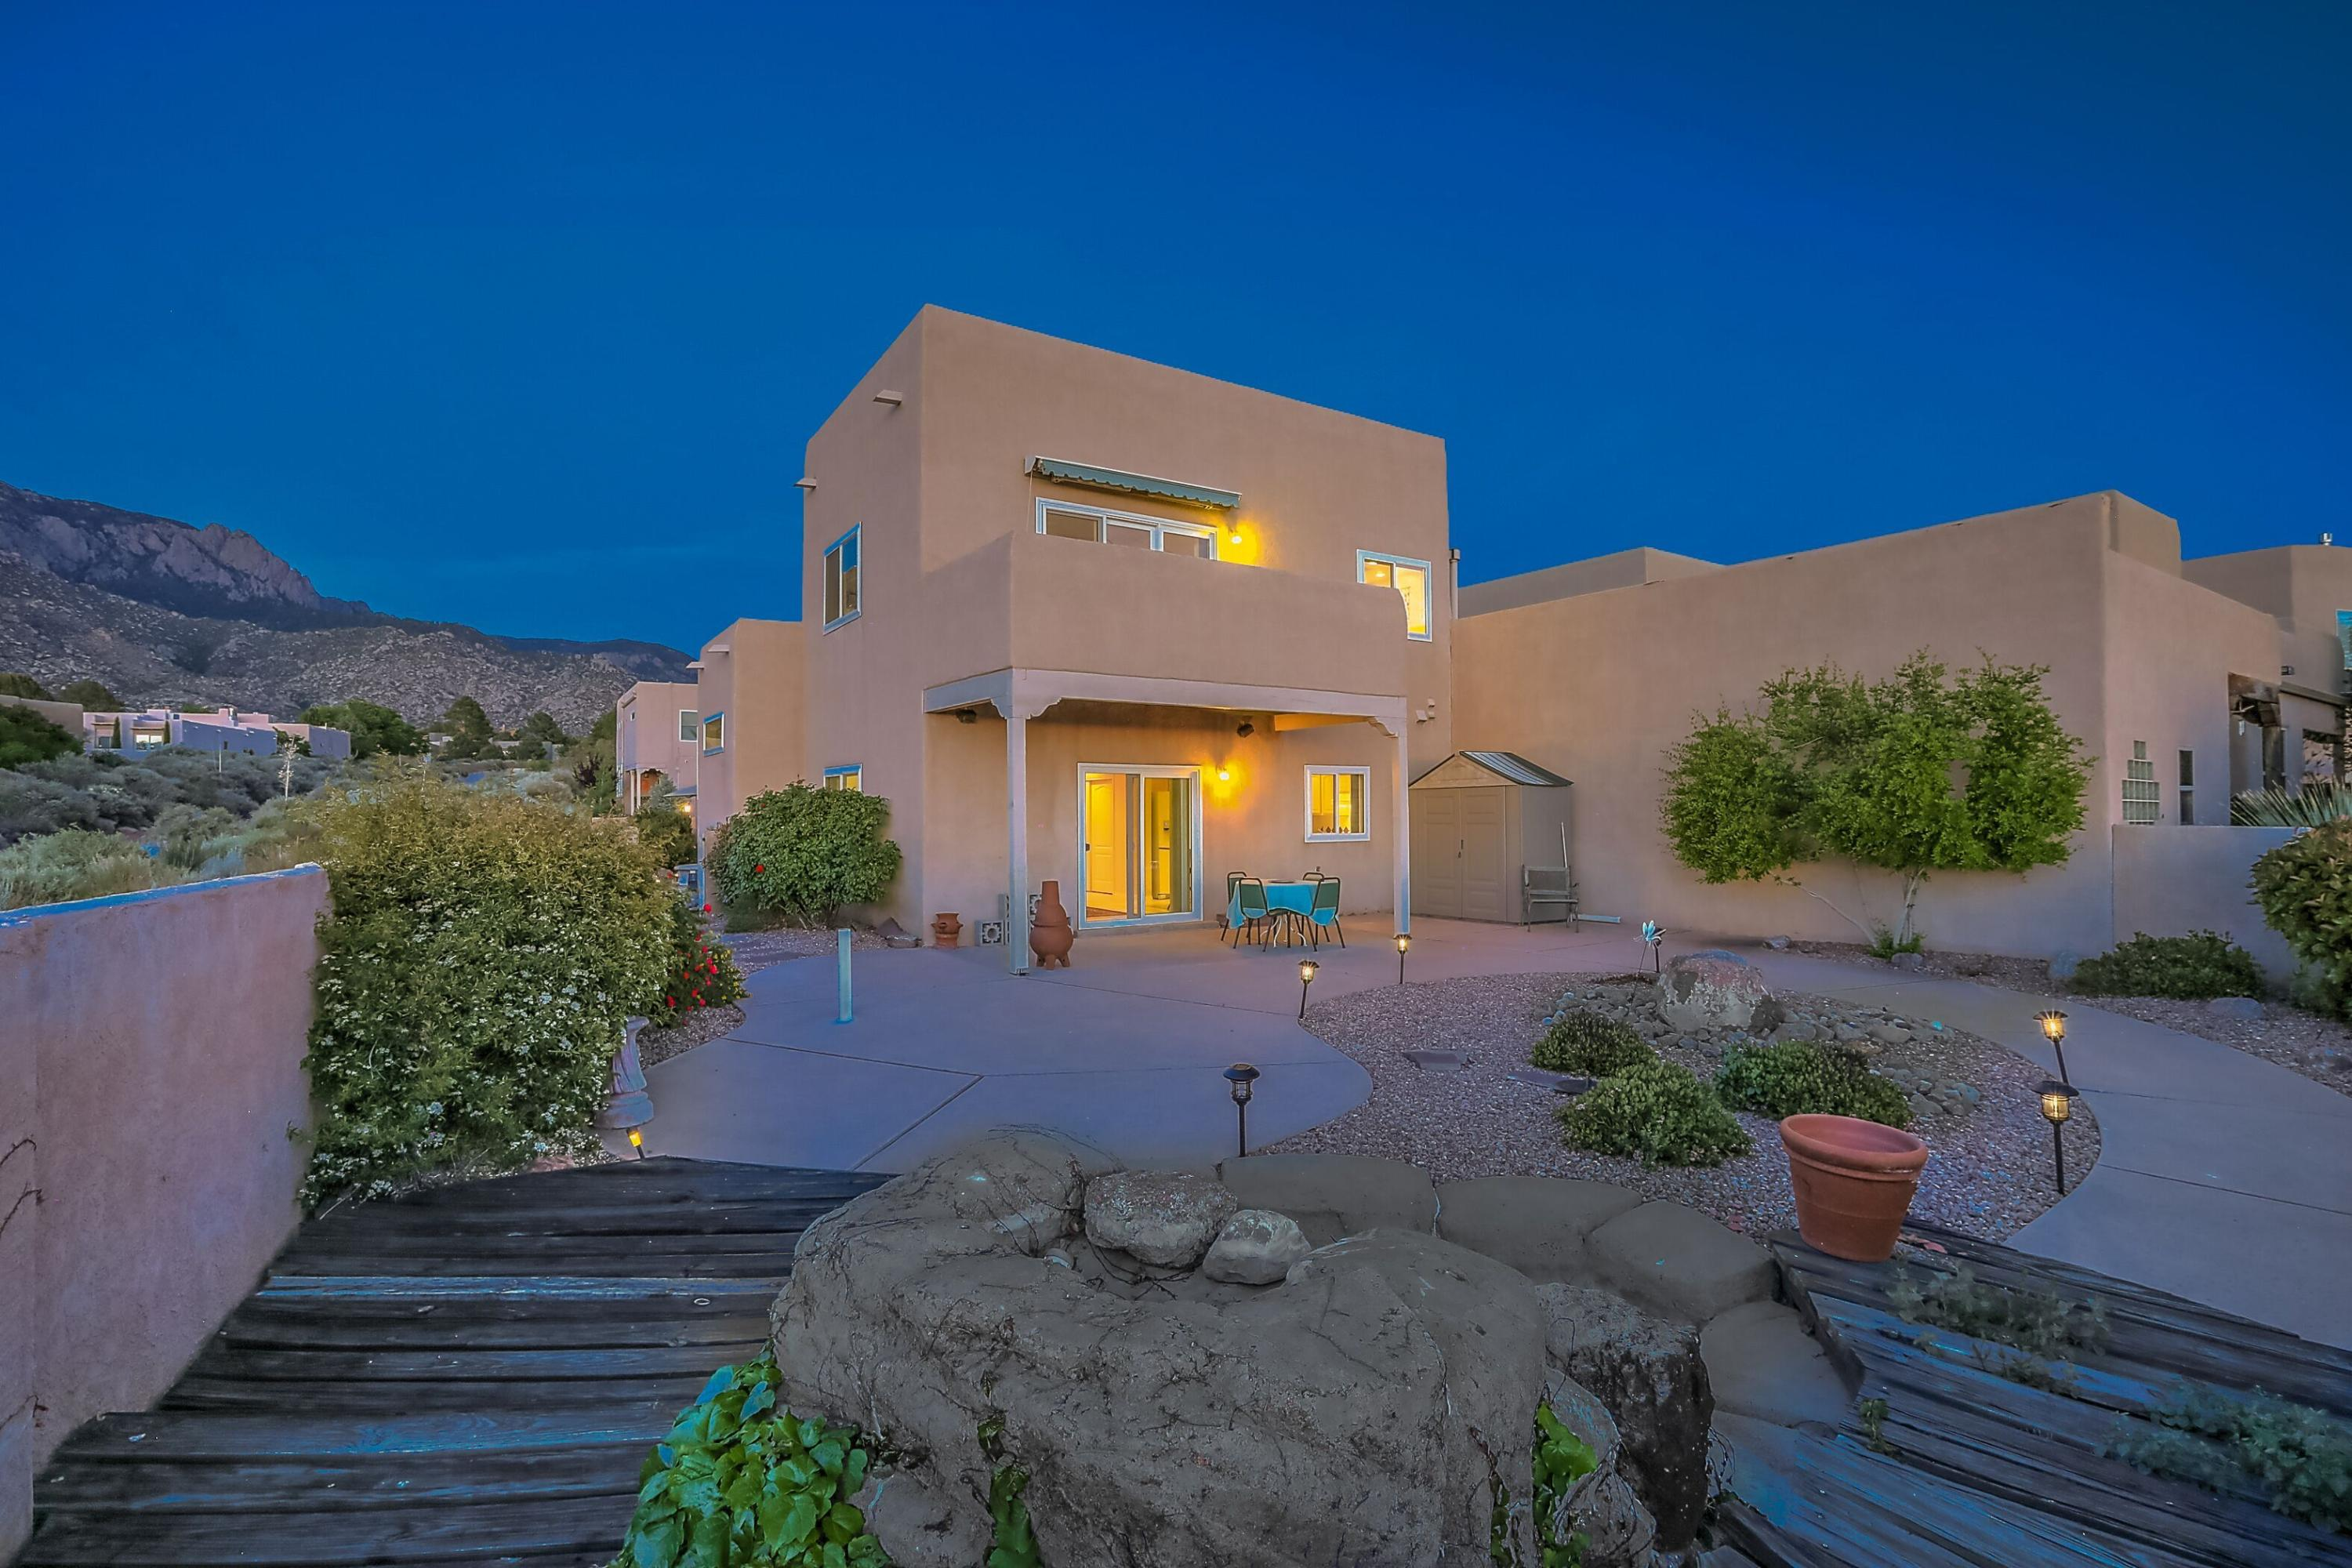 If you are looking for a low-maintenance, affordable home in an excellent school district, close to hiking & biking trails AND with amazing city and mountain views, here it is!  This two story home sits on the end of a cul-de-sac & features a modern, open floor plan w high ceilings & abundant natural light.  You will love the rough hewn beams in the connected living & dining area & the curvilinear wall of windows with views of the Sandia Mountains.  One bedroom and a 3/4 bathroom are on the main level, perfect for anyone who hates stairs.  The owners suite upstairs features a balcony w forever city views, plus a walk-in closet, garden tub & sep shower.  Another bedroom & bathroom are also upstairs.  With abundant storage, a newer HVAC system, & newer windows, be prepared to fall in love.